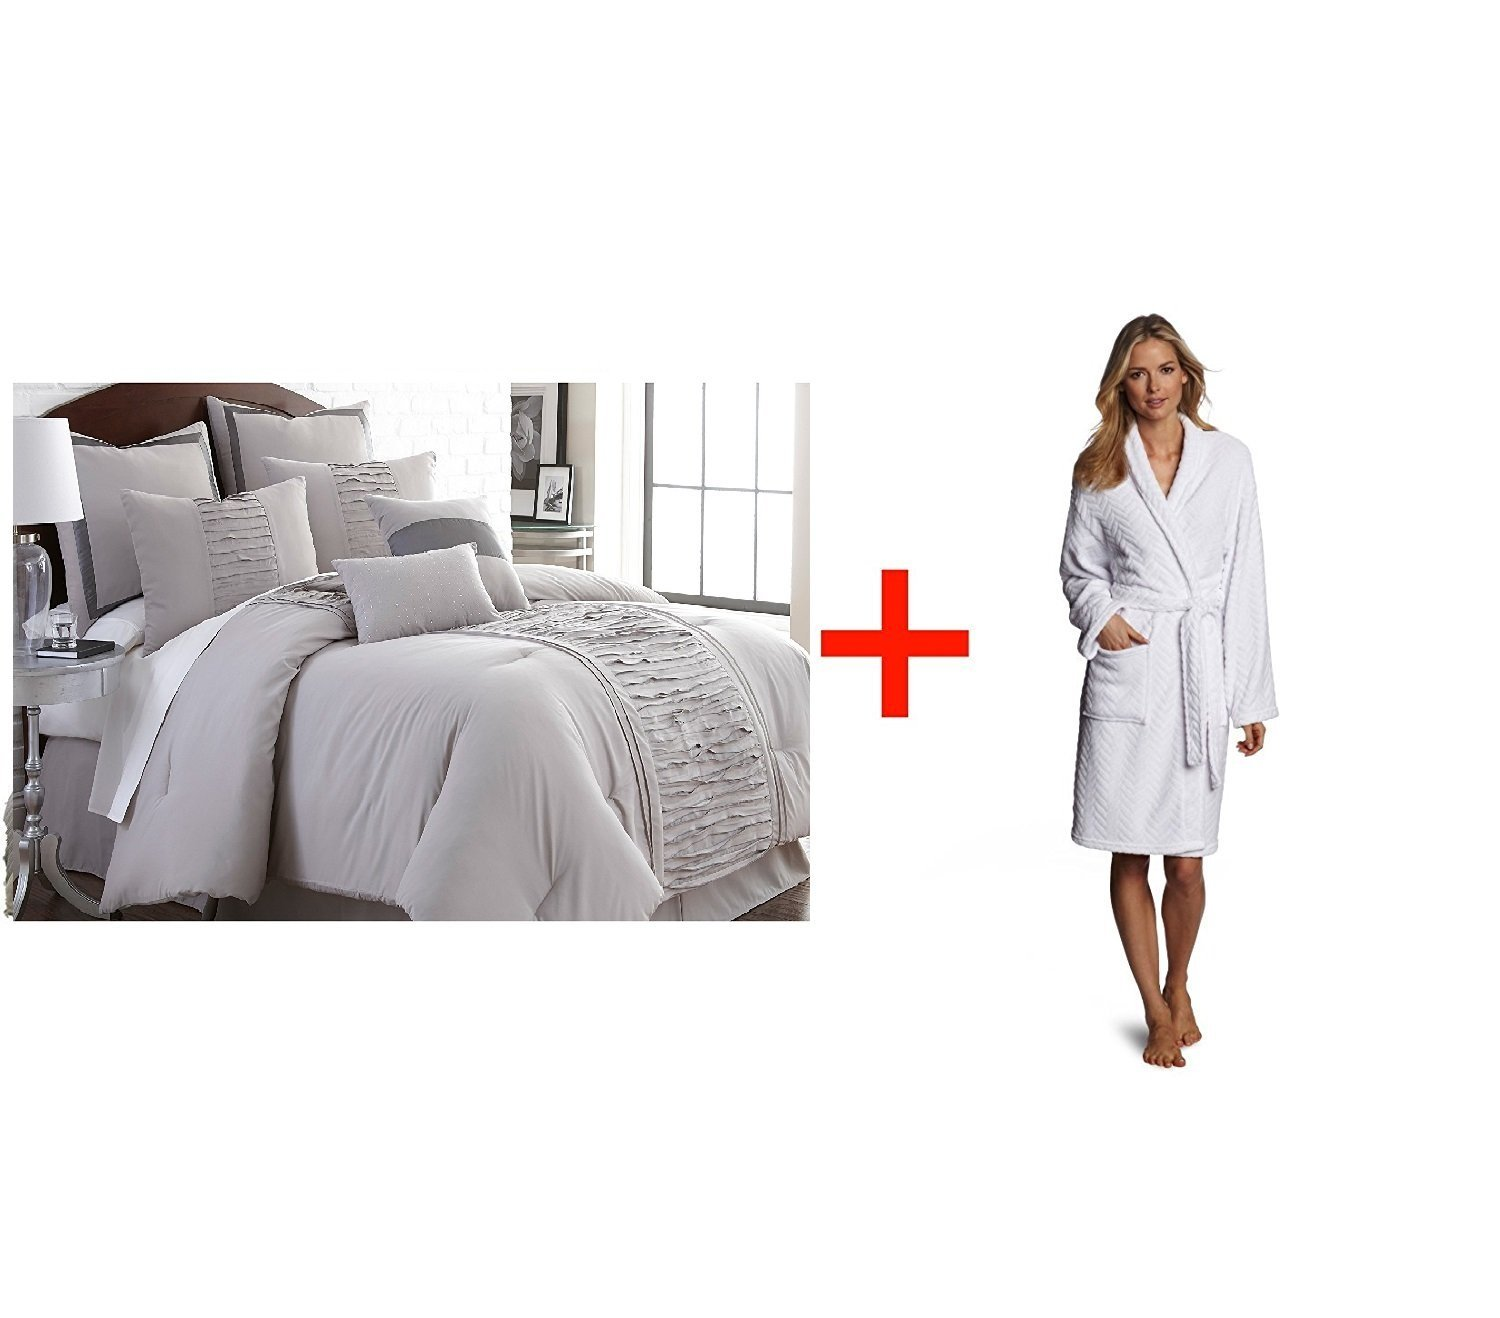 Buy Bed Linens. This Colormate Full Size Complete Bed 8-pc ...